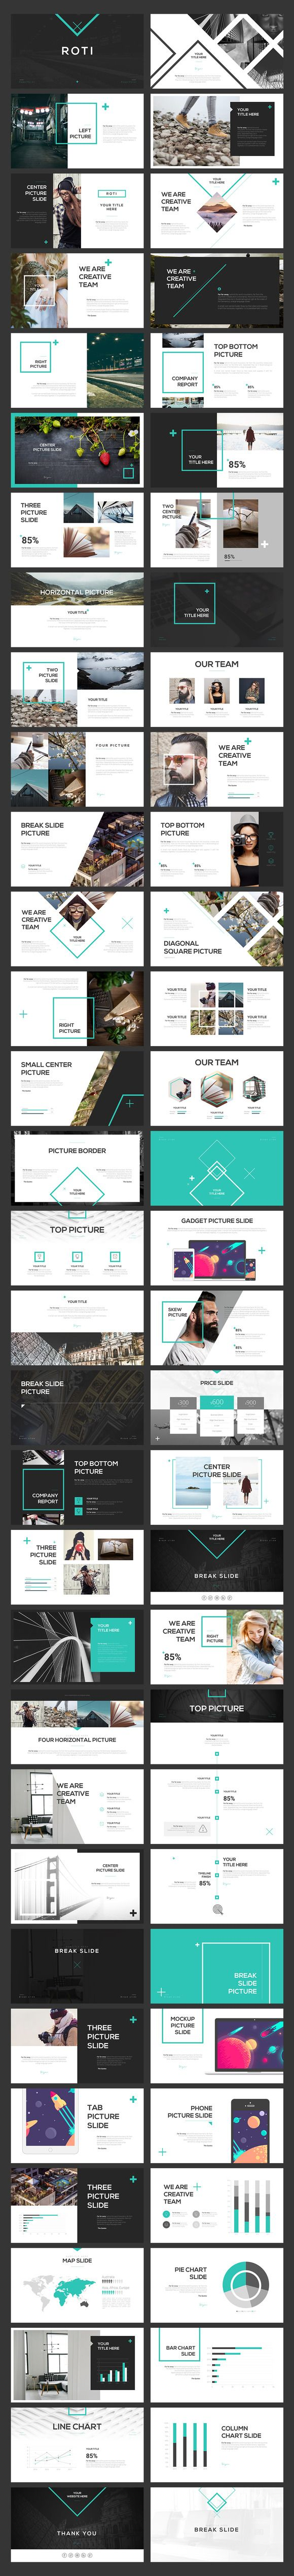 ROTI PowerPoint Template - Presentations - 6                                                                                                                                                                                 More